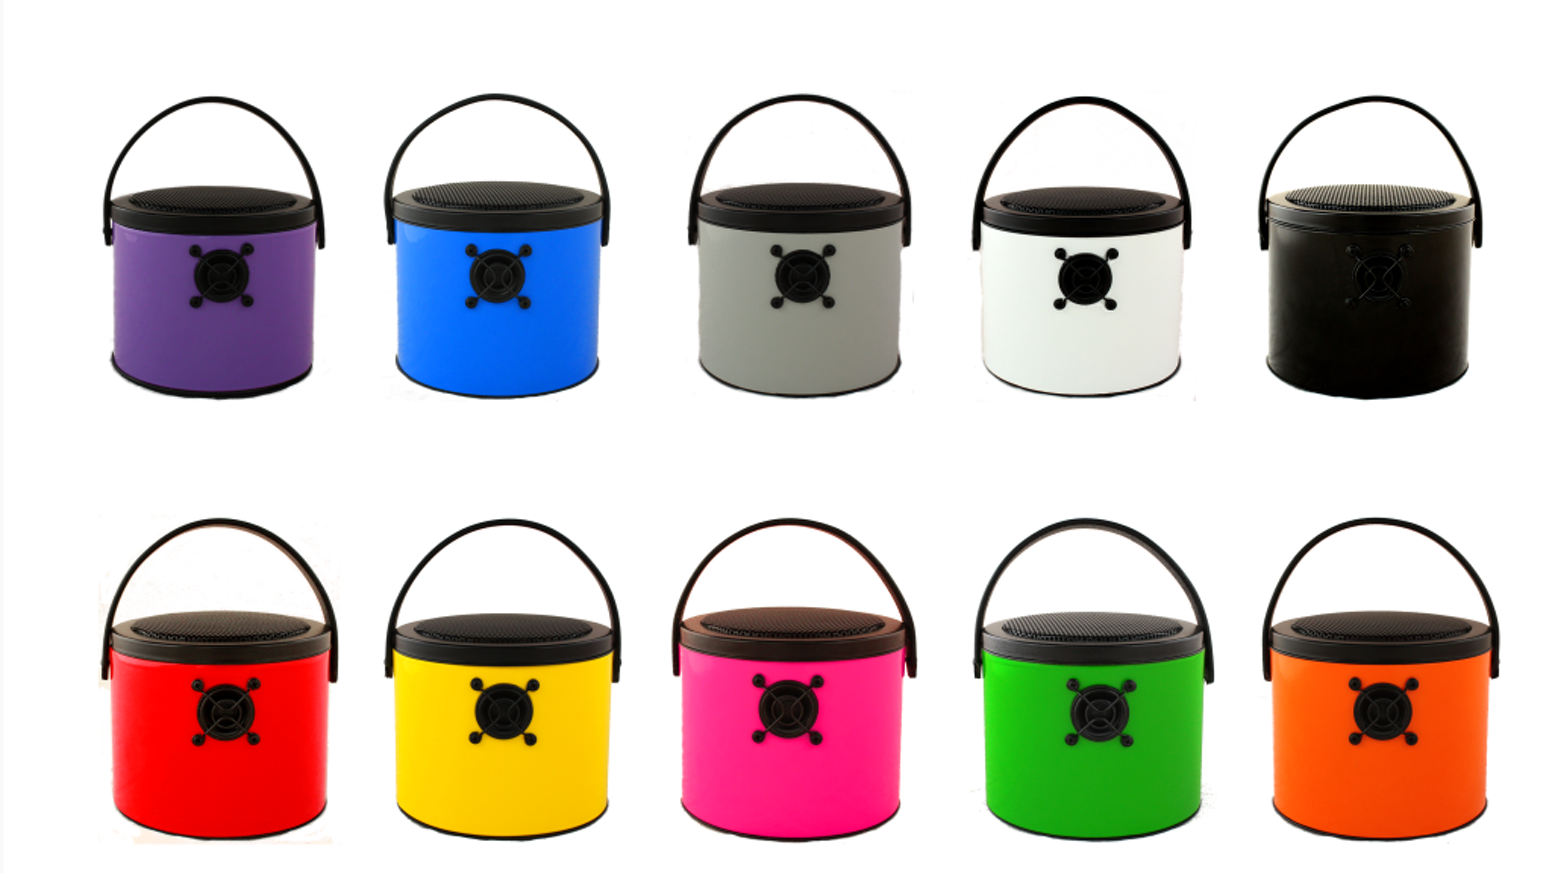 Hi-Fi /Studio quality audio, portable Bluetooth® loudspeakers. Analog sound, good bass & loud, 10 exciting colours. Handmade in the UK.